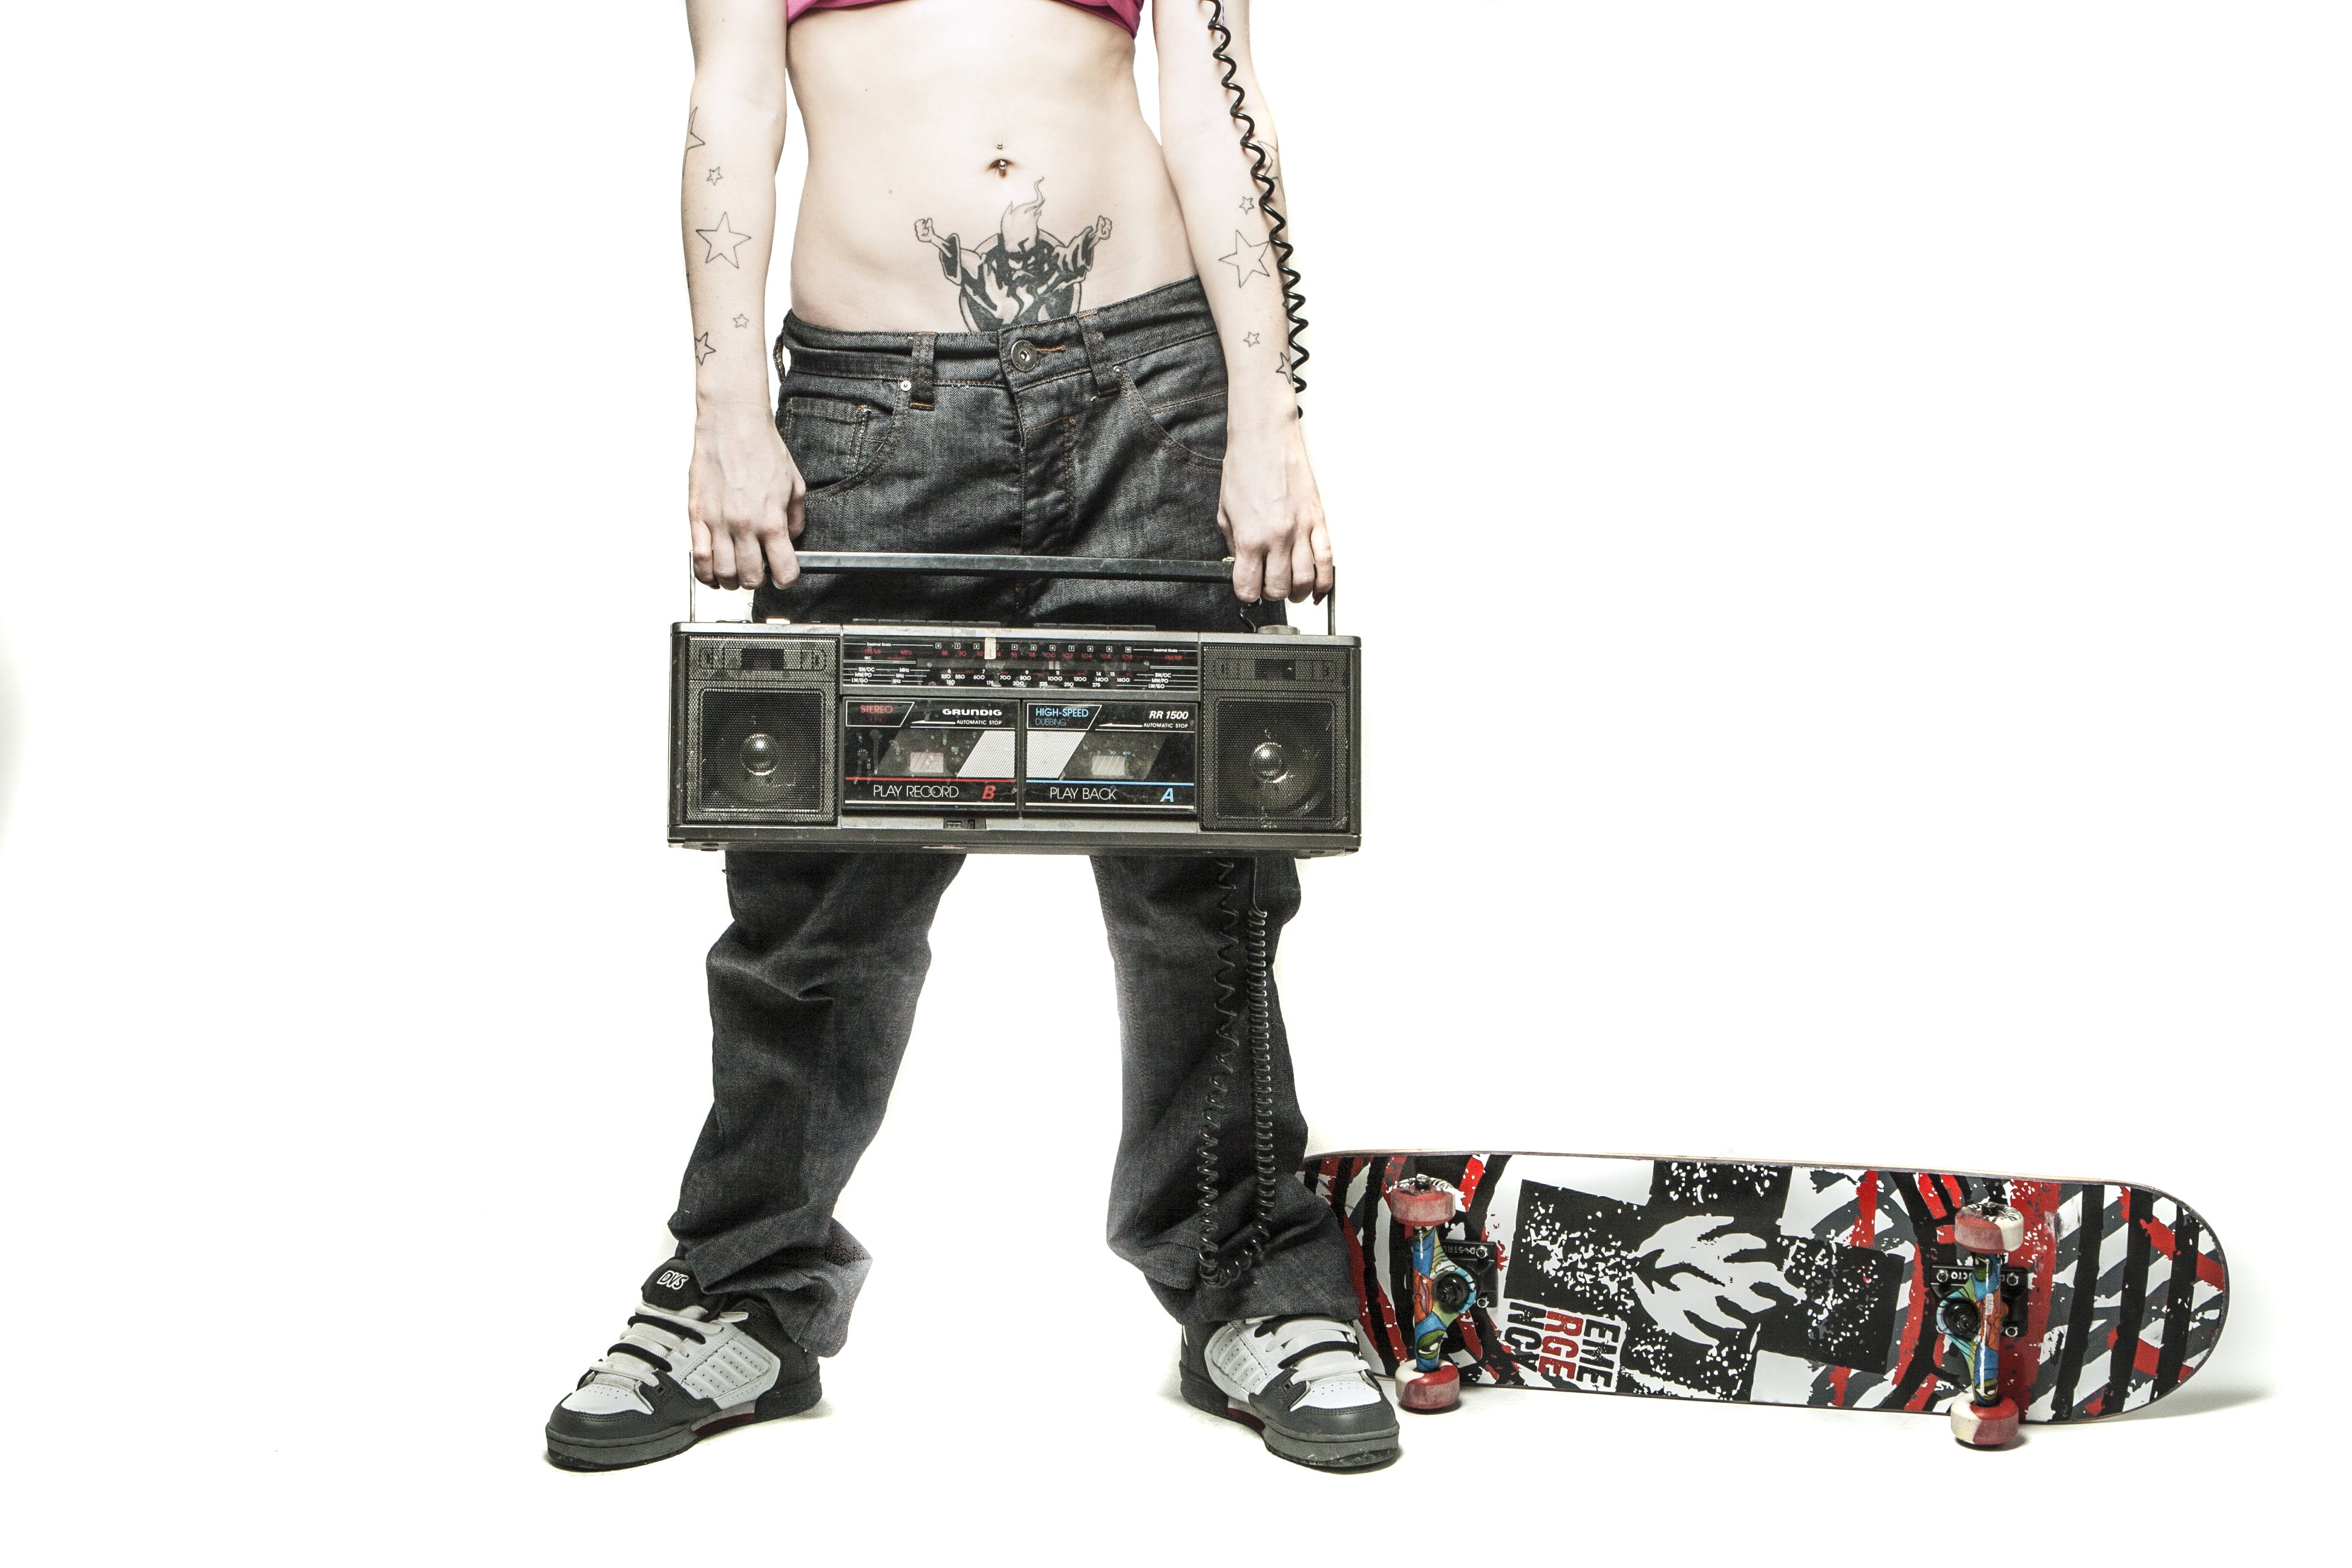 Woman Holding Boombox Near Skateboard